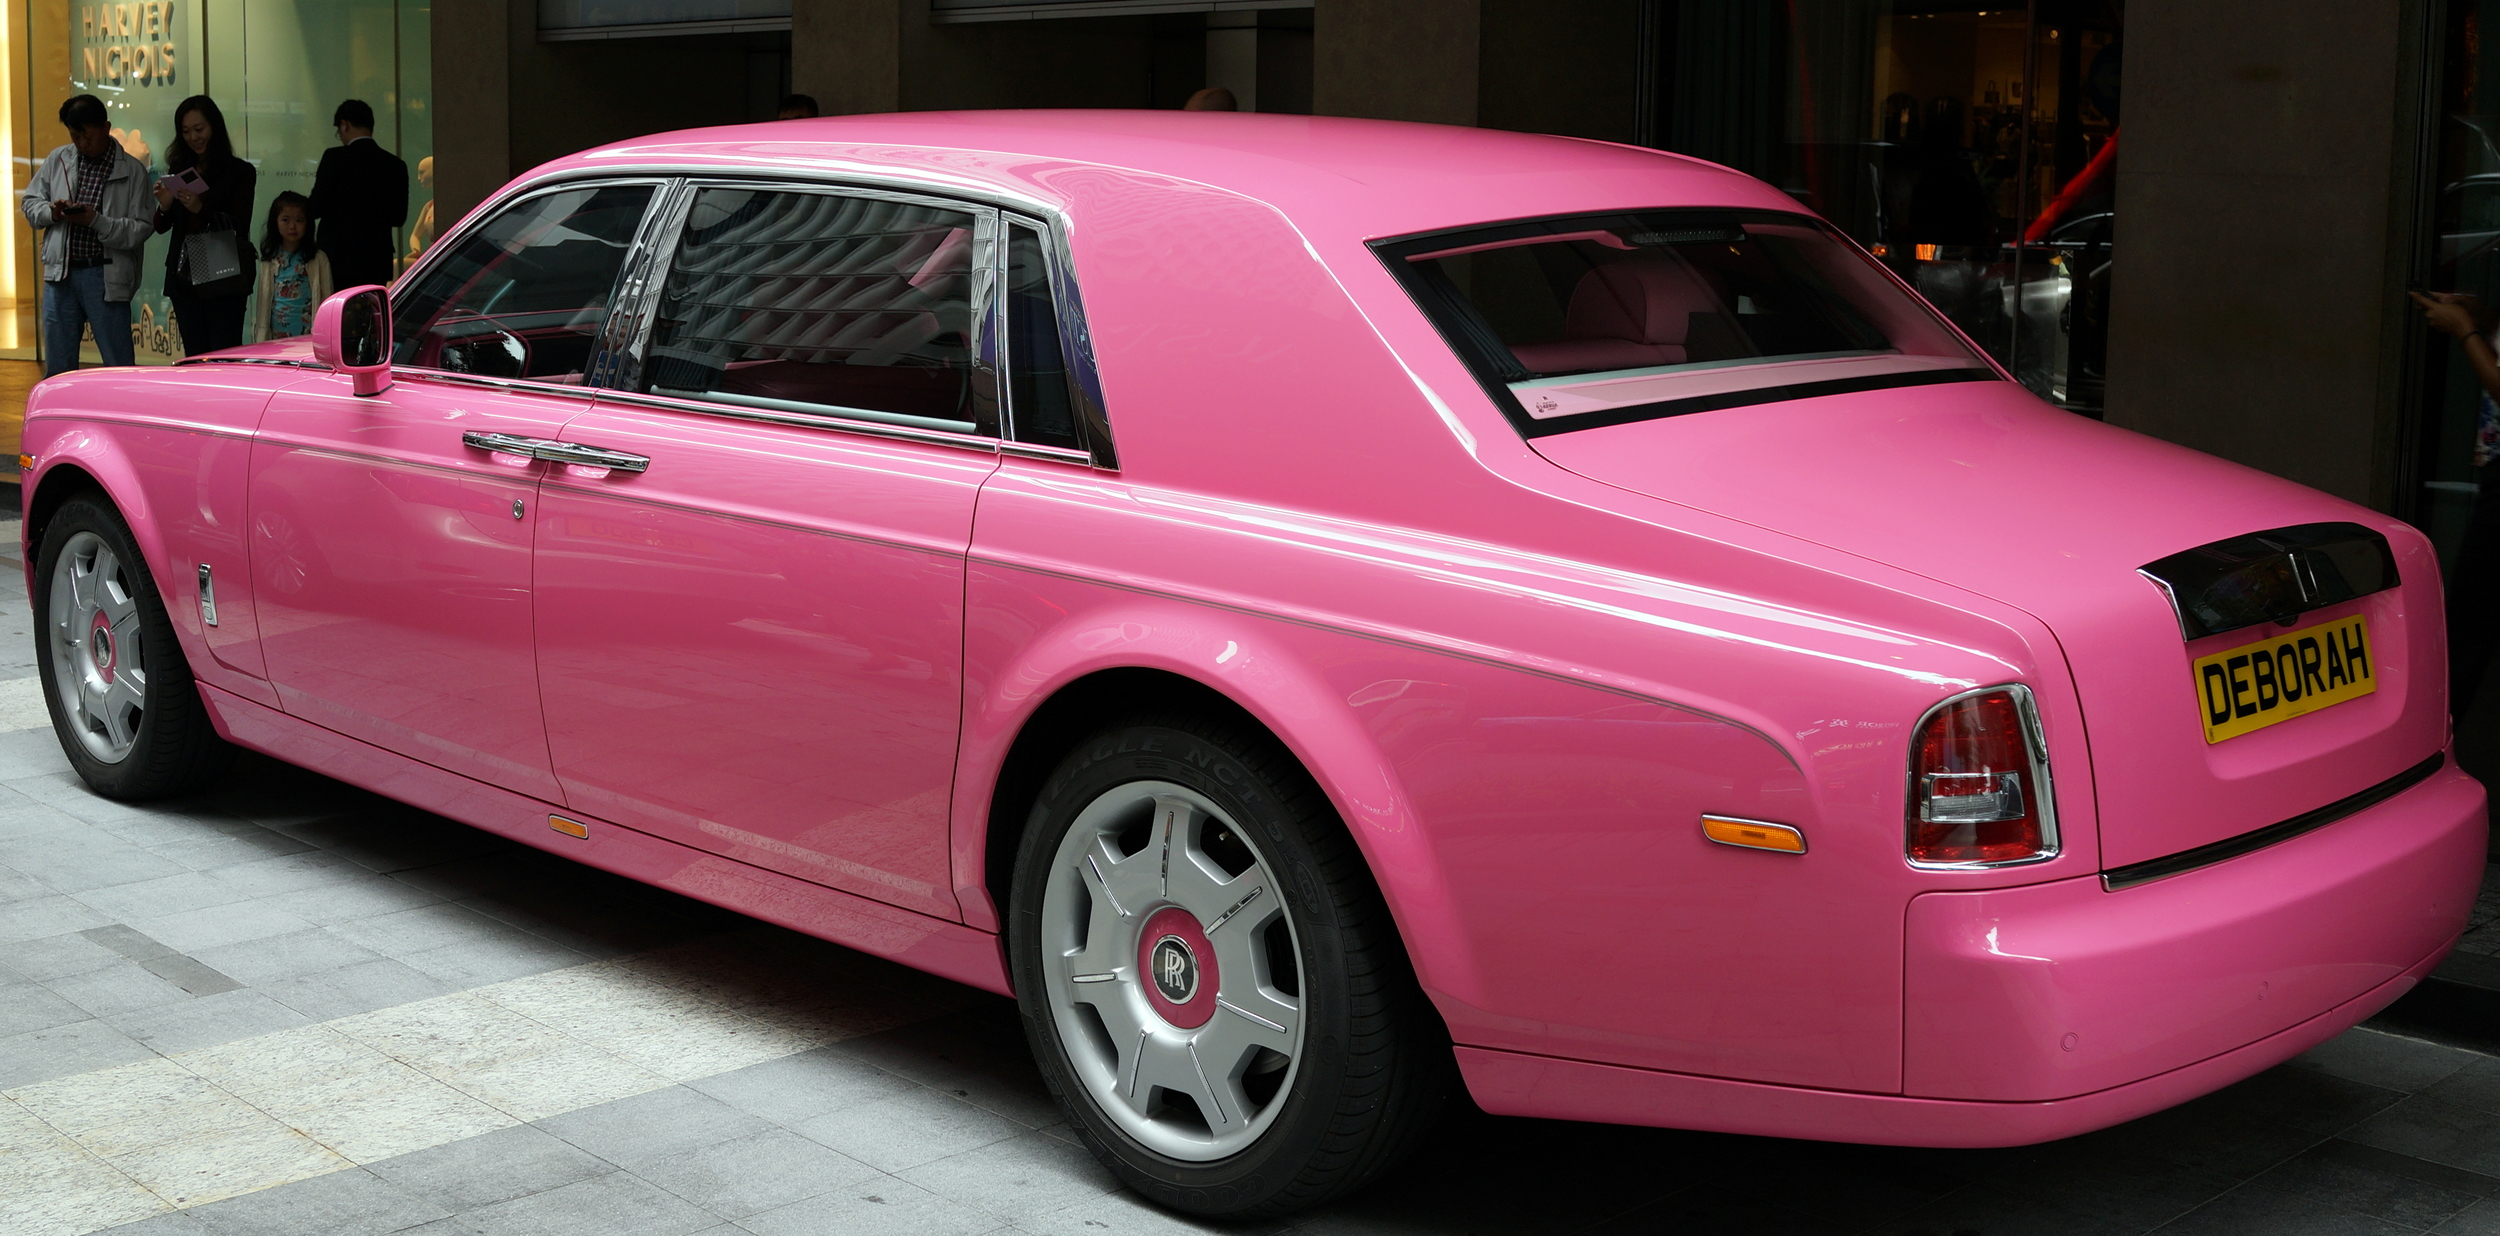 Clearly Stephen does not care what people think of his rather eccentric and questionable taste with regards to this Rolls Royce Phantom - this is what he bought his wife! amazing.